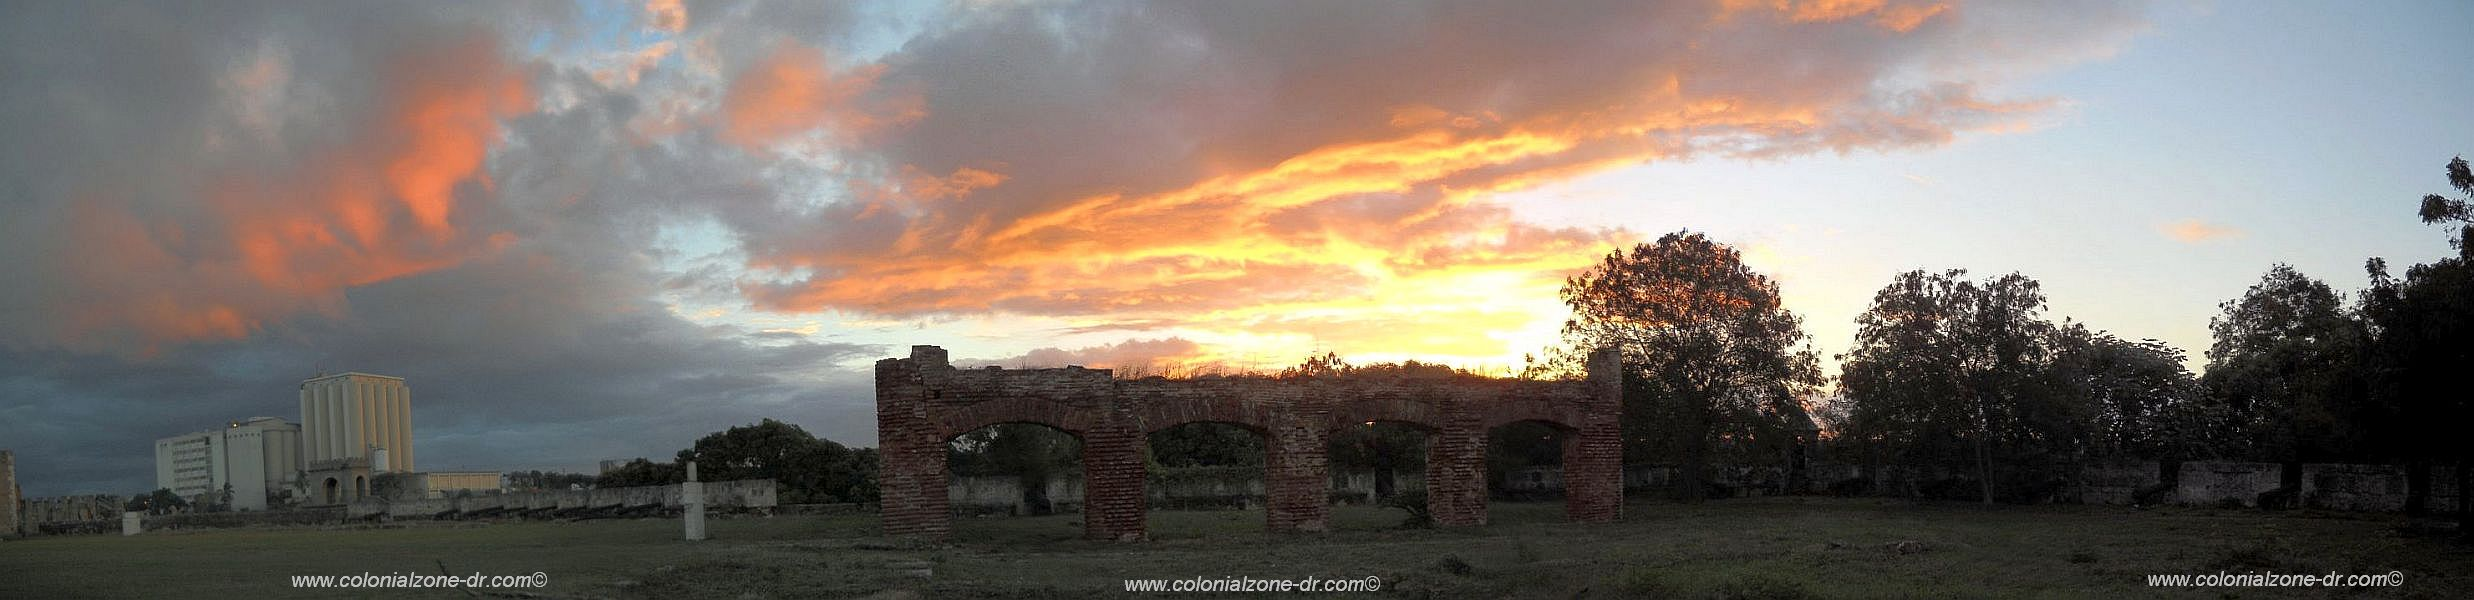 fire skies over the fort ozama in the colonial zone santo domingo